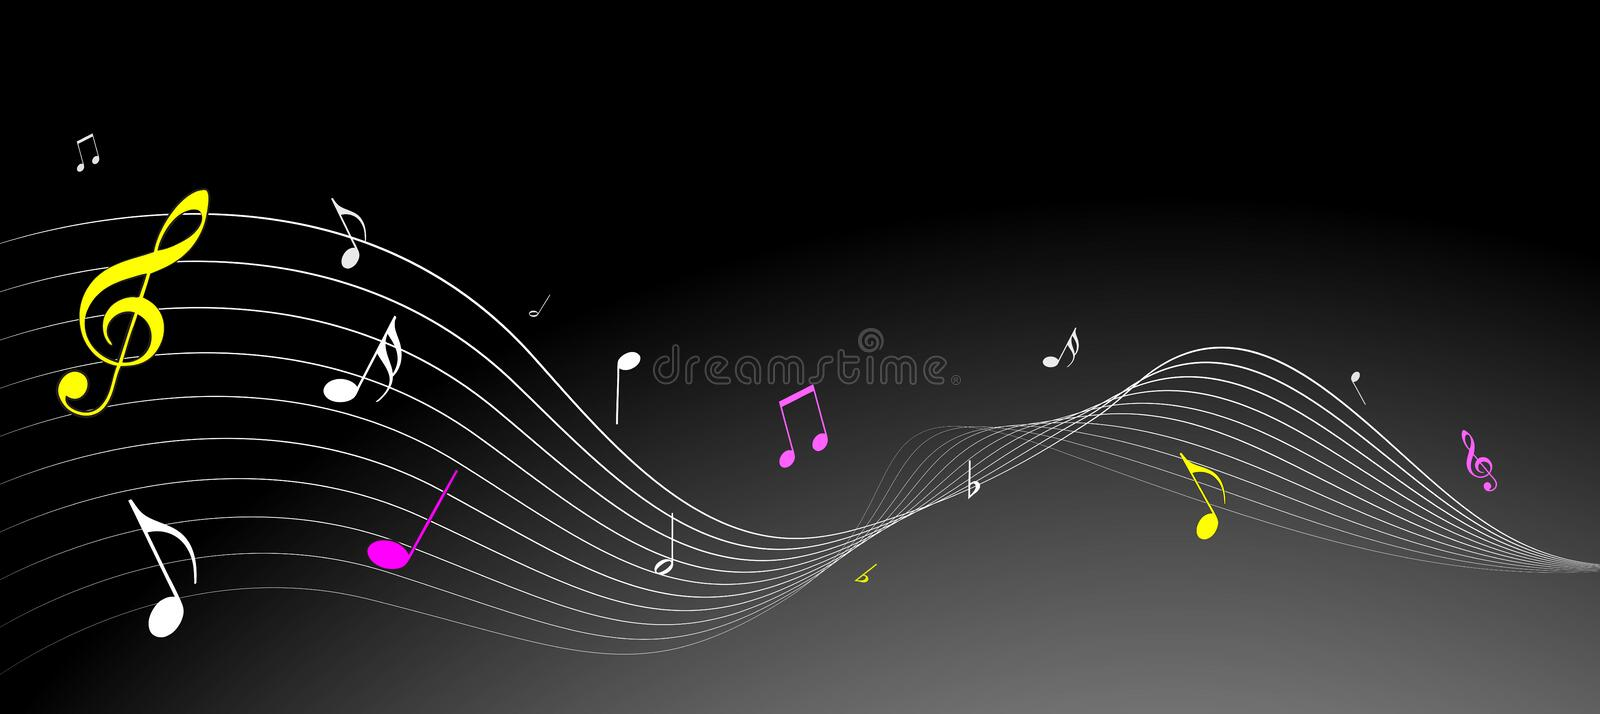 Simple music notes. High quality simple music notes in illustration stock illustration